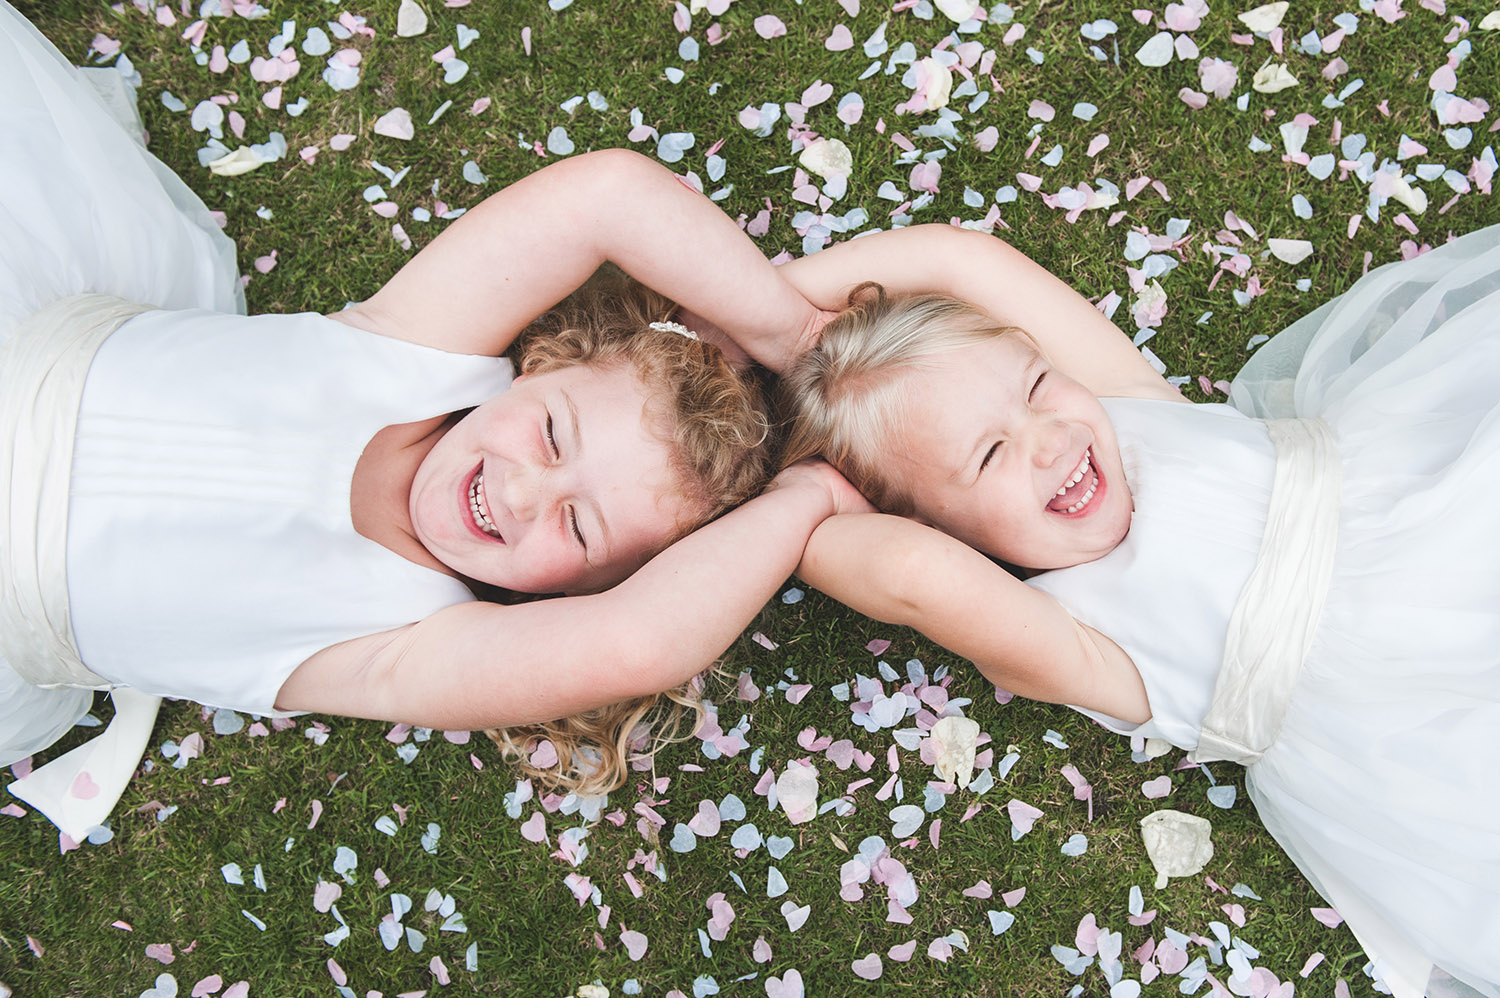 jma-photography-flowergirls-laying on-confetti-laughing.jpg